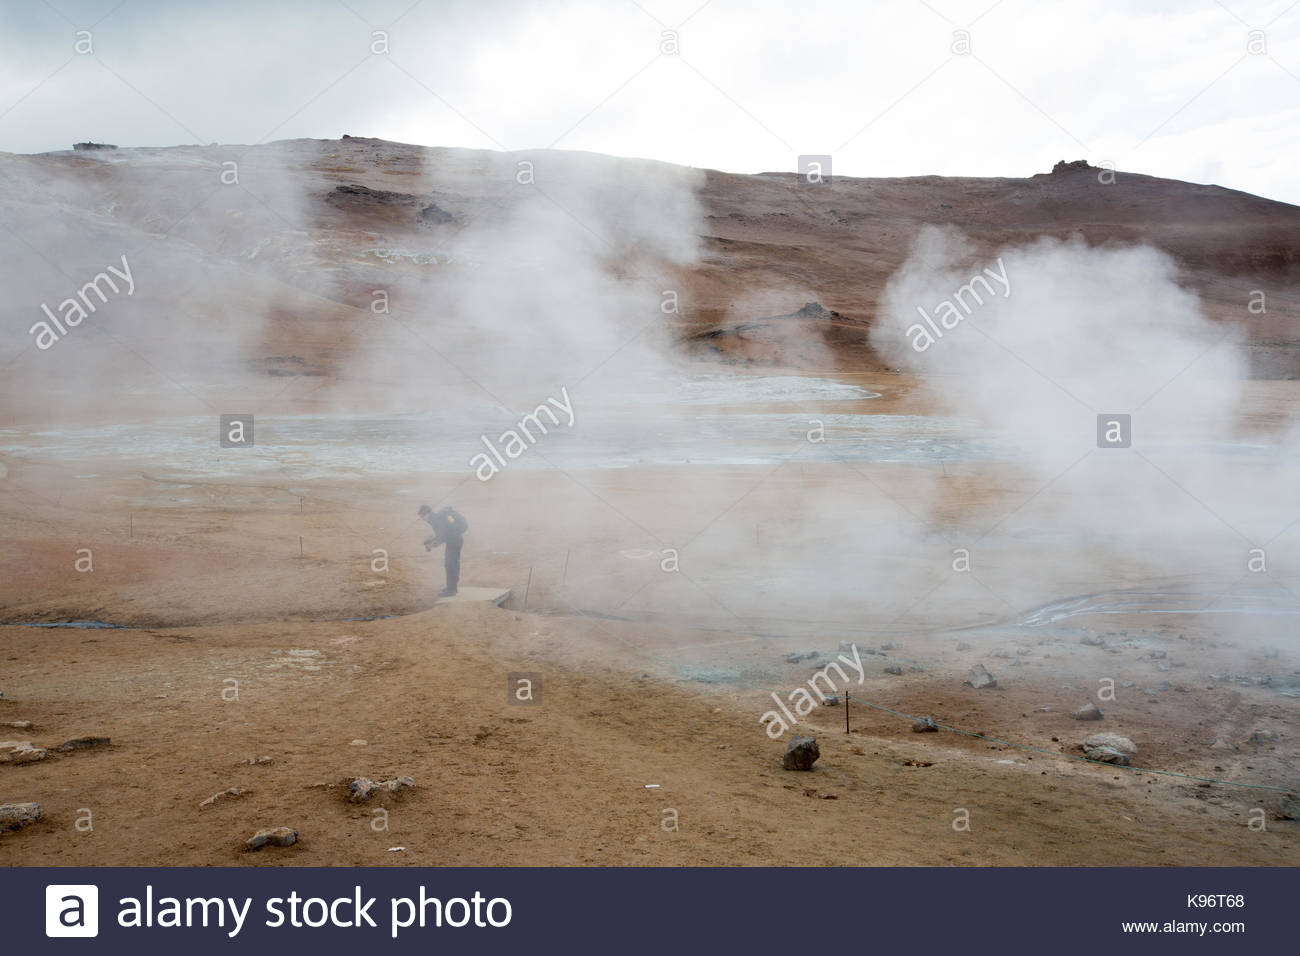 A man looks at and photographs the steaming mud pots geothermal area near Lake Myvatn. - Stock Image